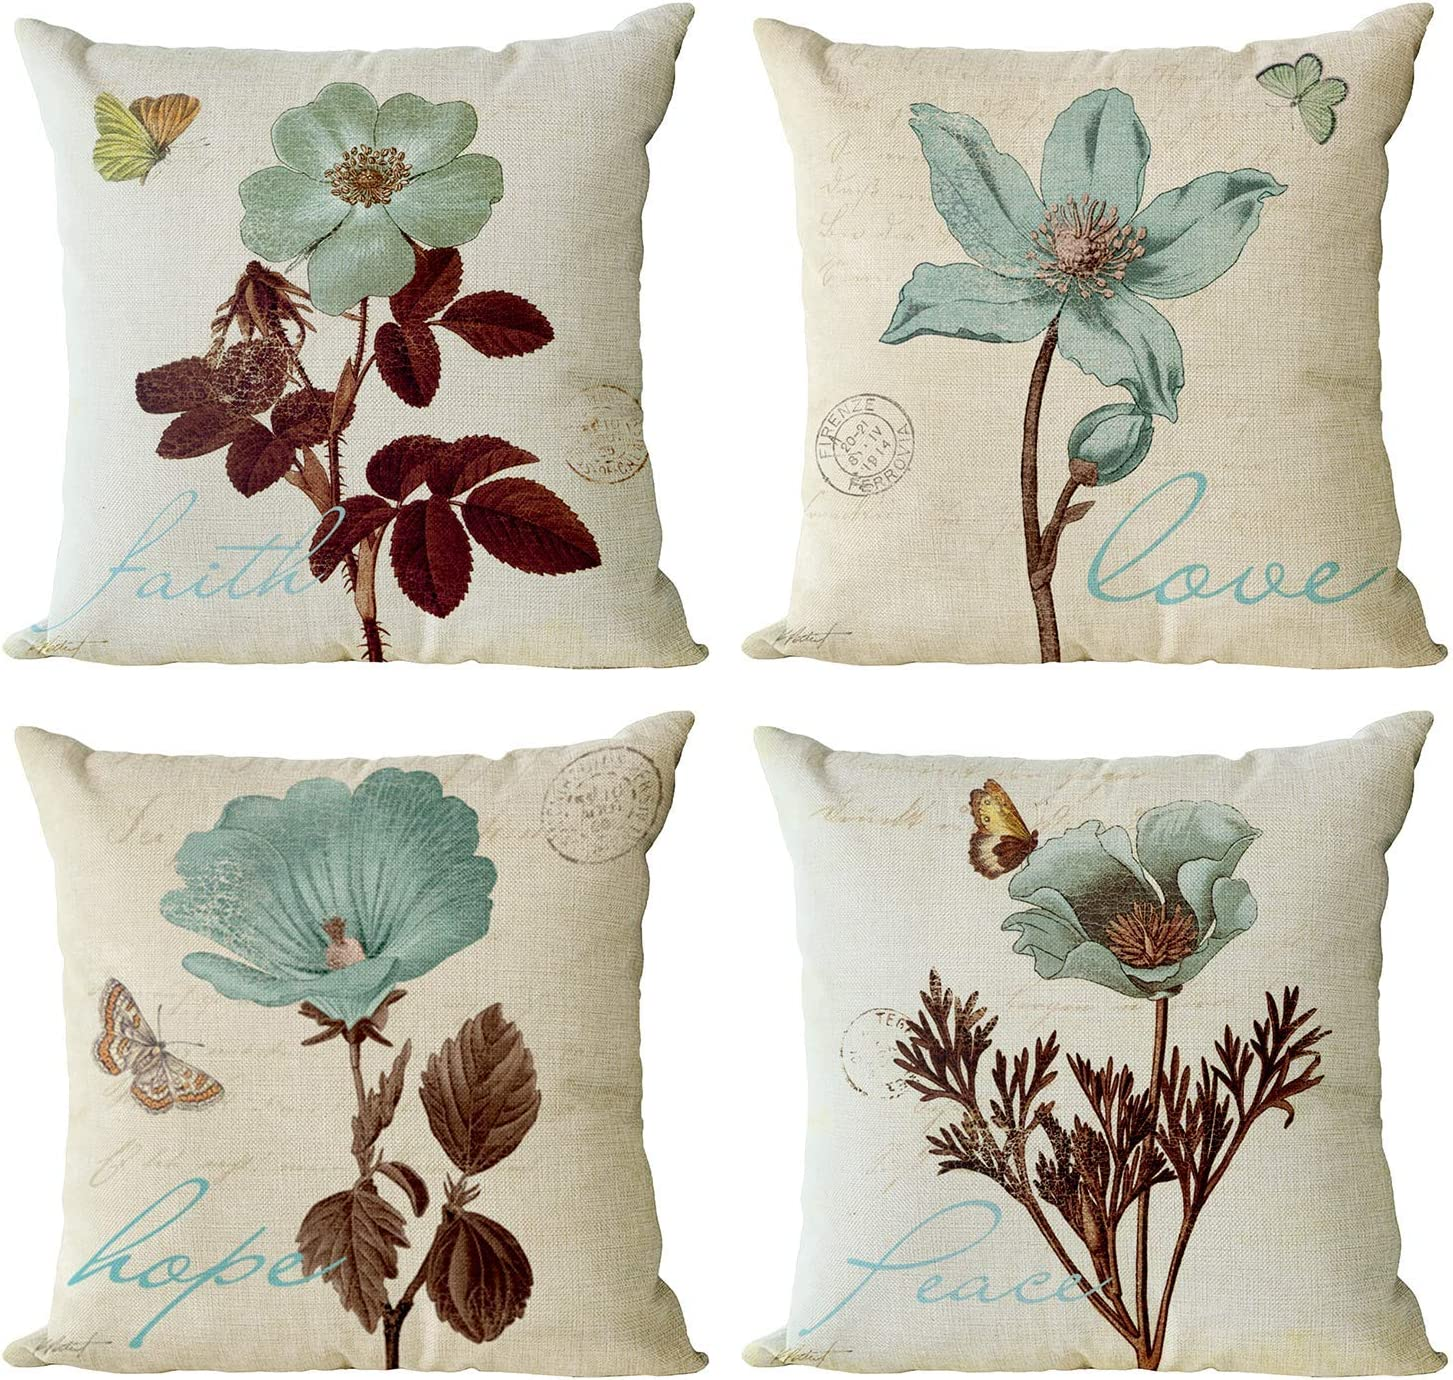 YeeJu Set of 4 Floral Decorative Throw Pillow Covers Plant Pillow Covers Cotton Linen Lotus Leaf Square Pillowcase Flower Outdoor Sofa Bedding Car and Home Decor Pillow Cushion Covers 20x20 Inch